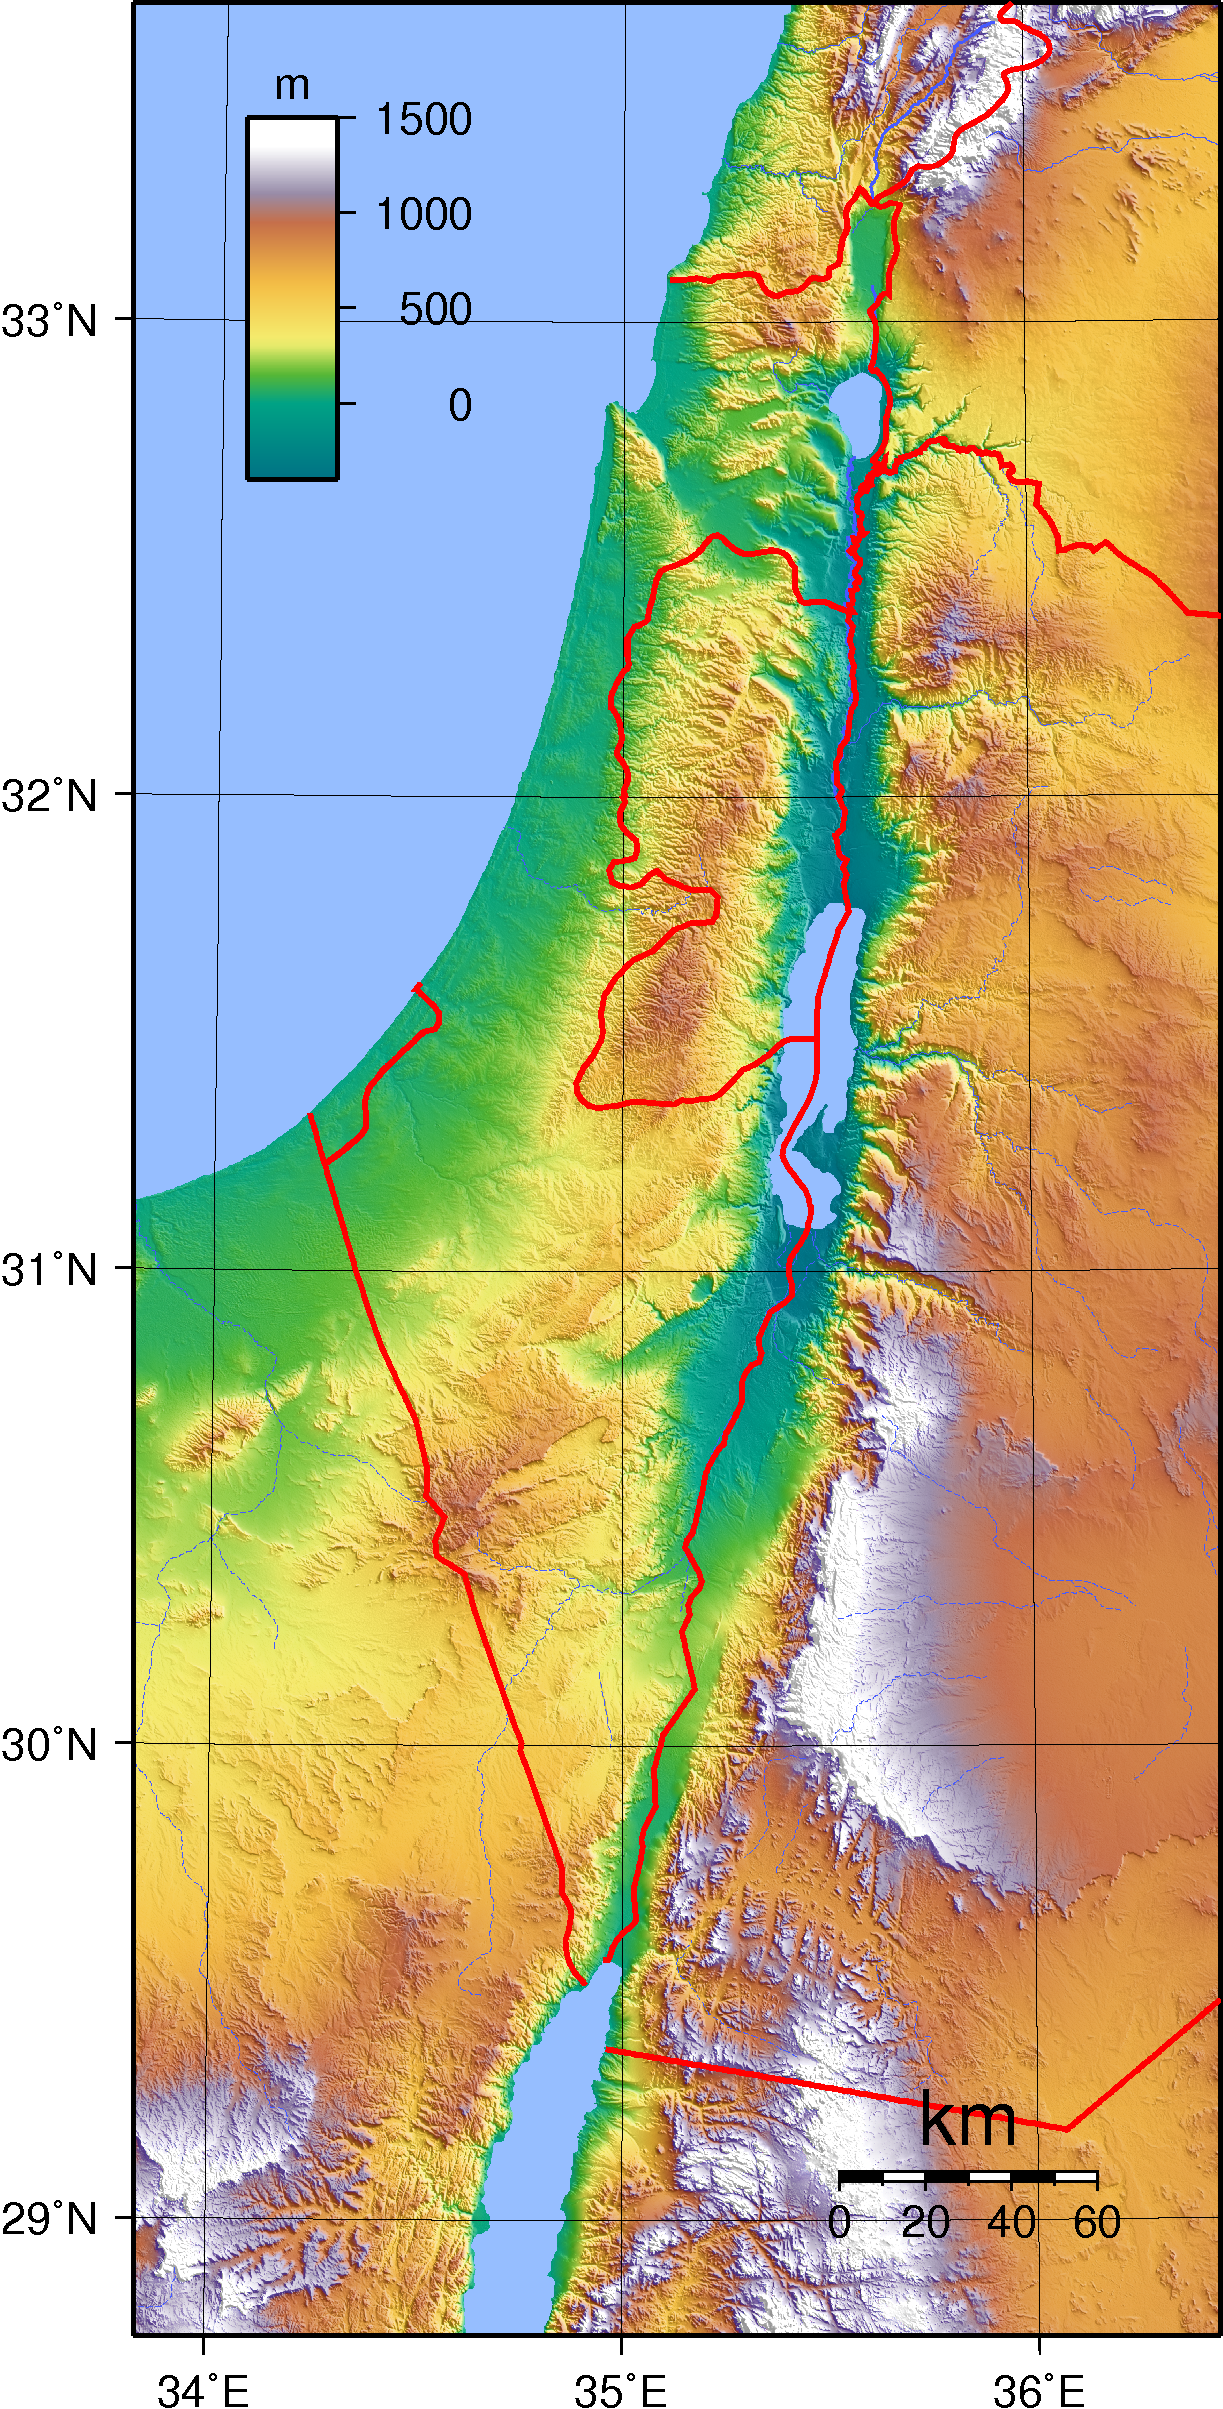 File:Israel Topography.png   Wikimedia Commons